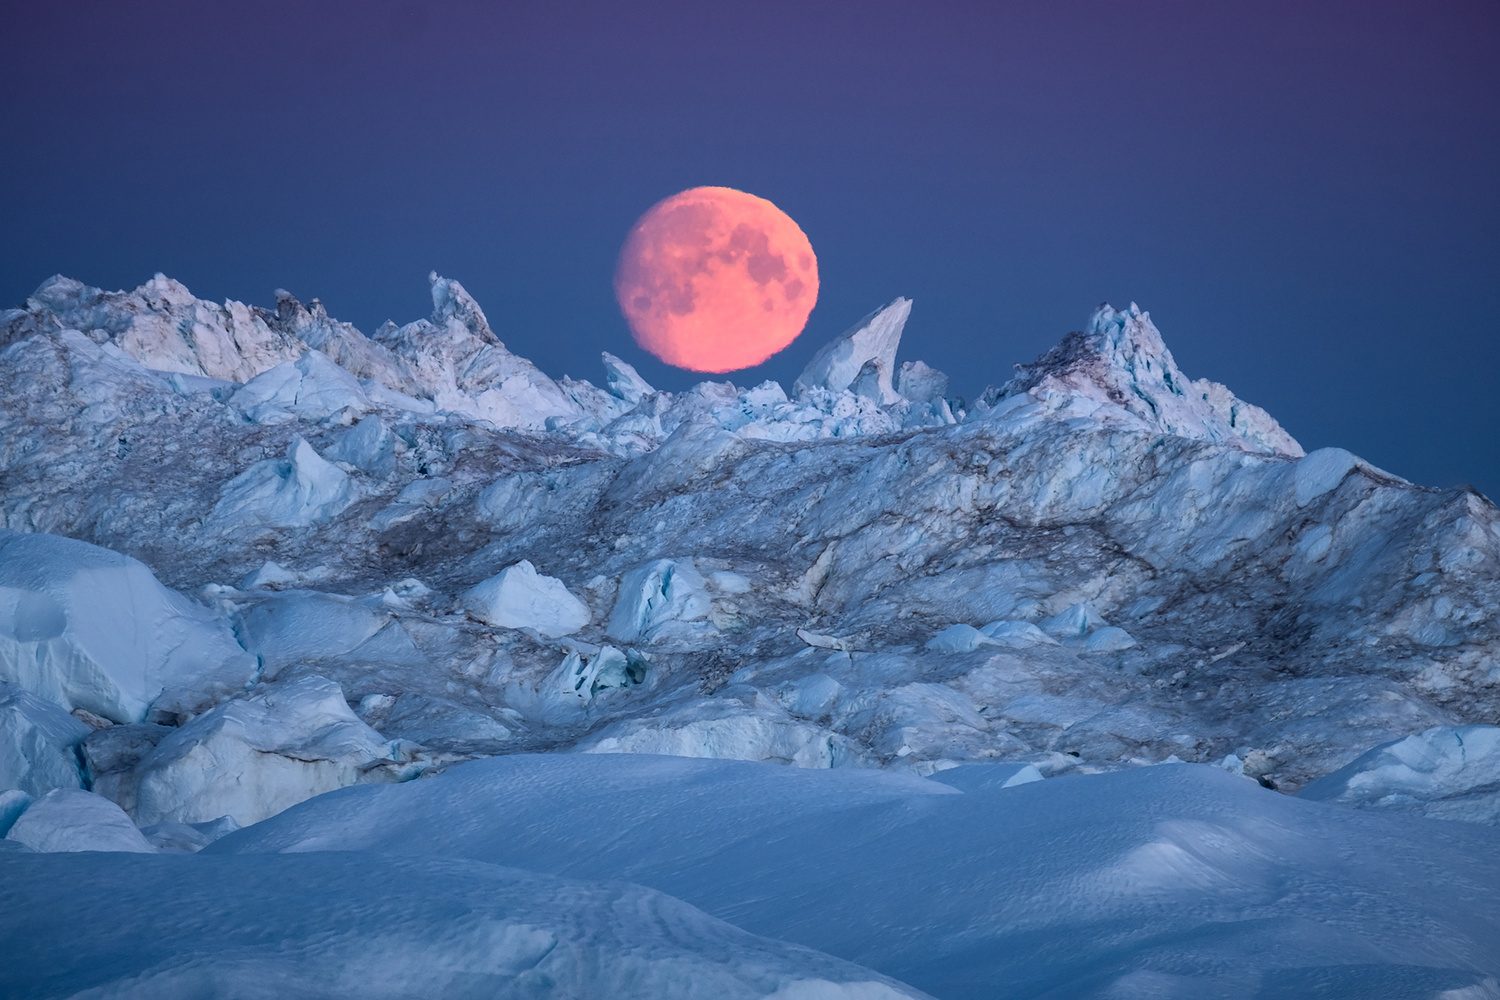 Moon rising over Icebergs in Ilulissat Icefjord by Maria Sahai